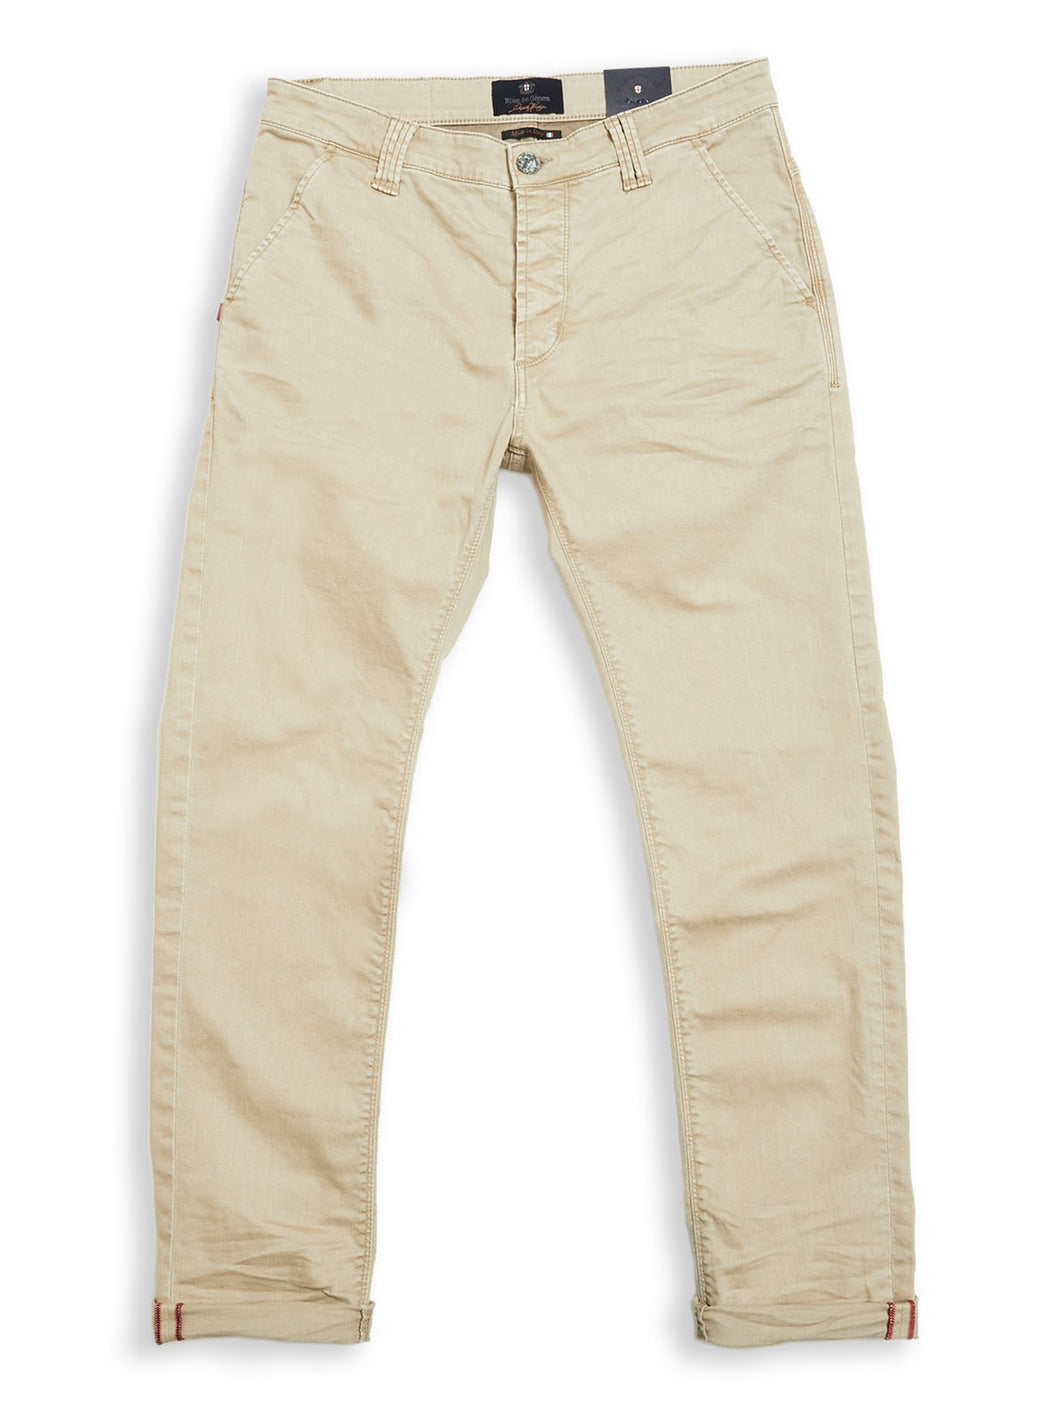 Paulo Pavia Enzyme Trousers